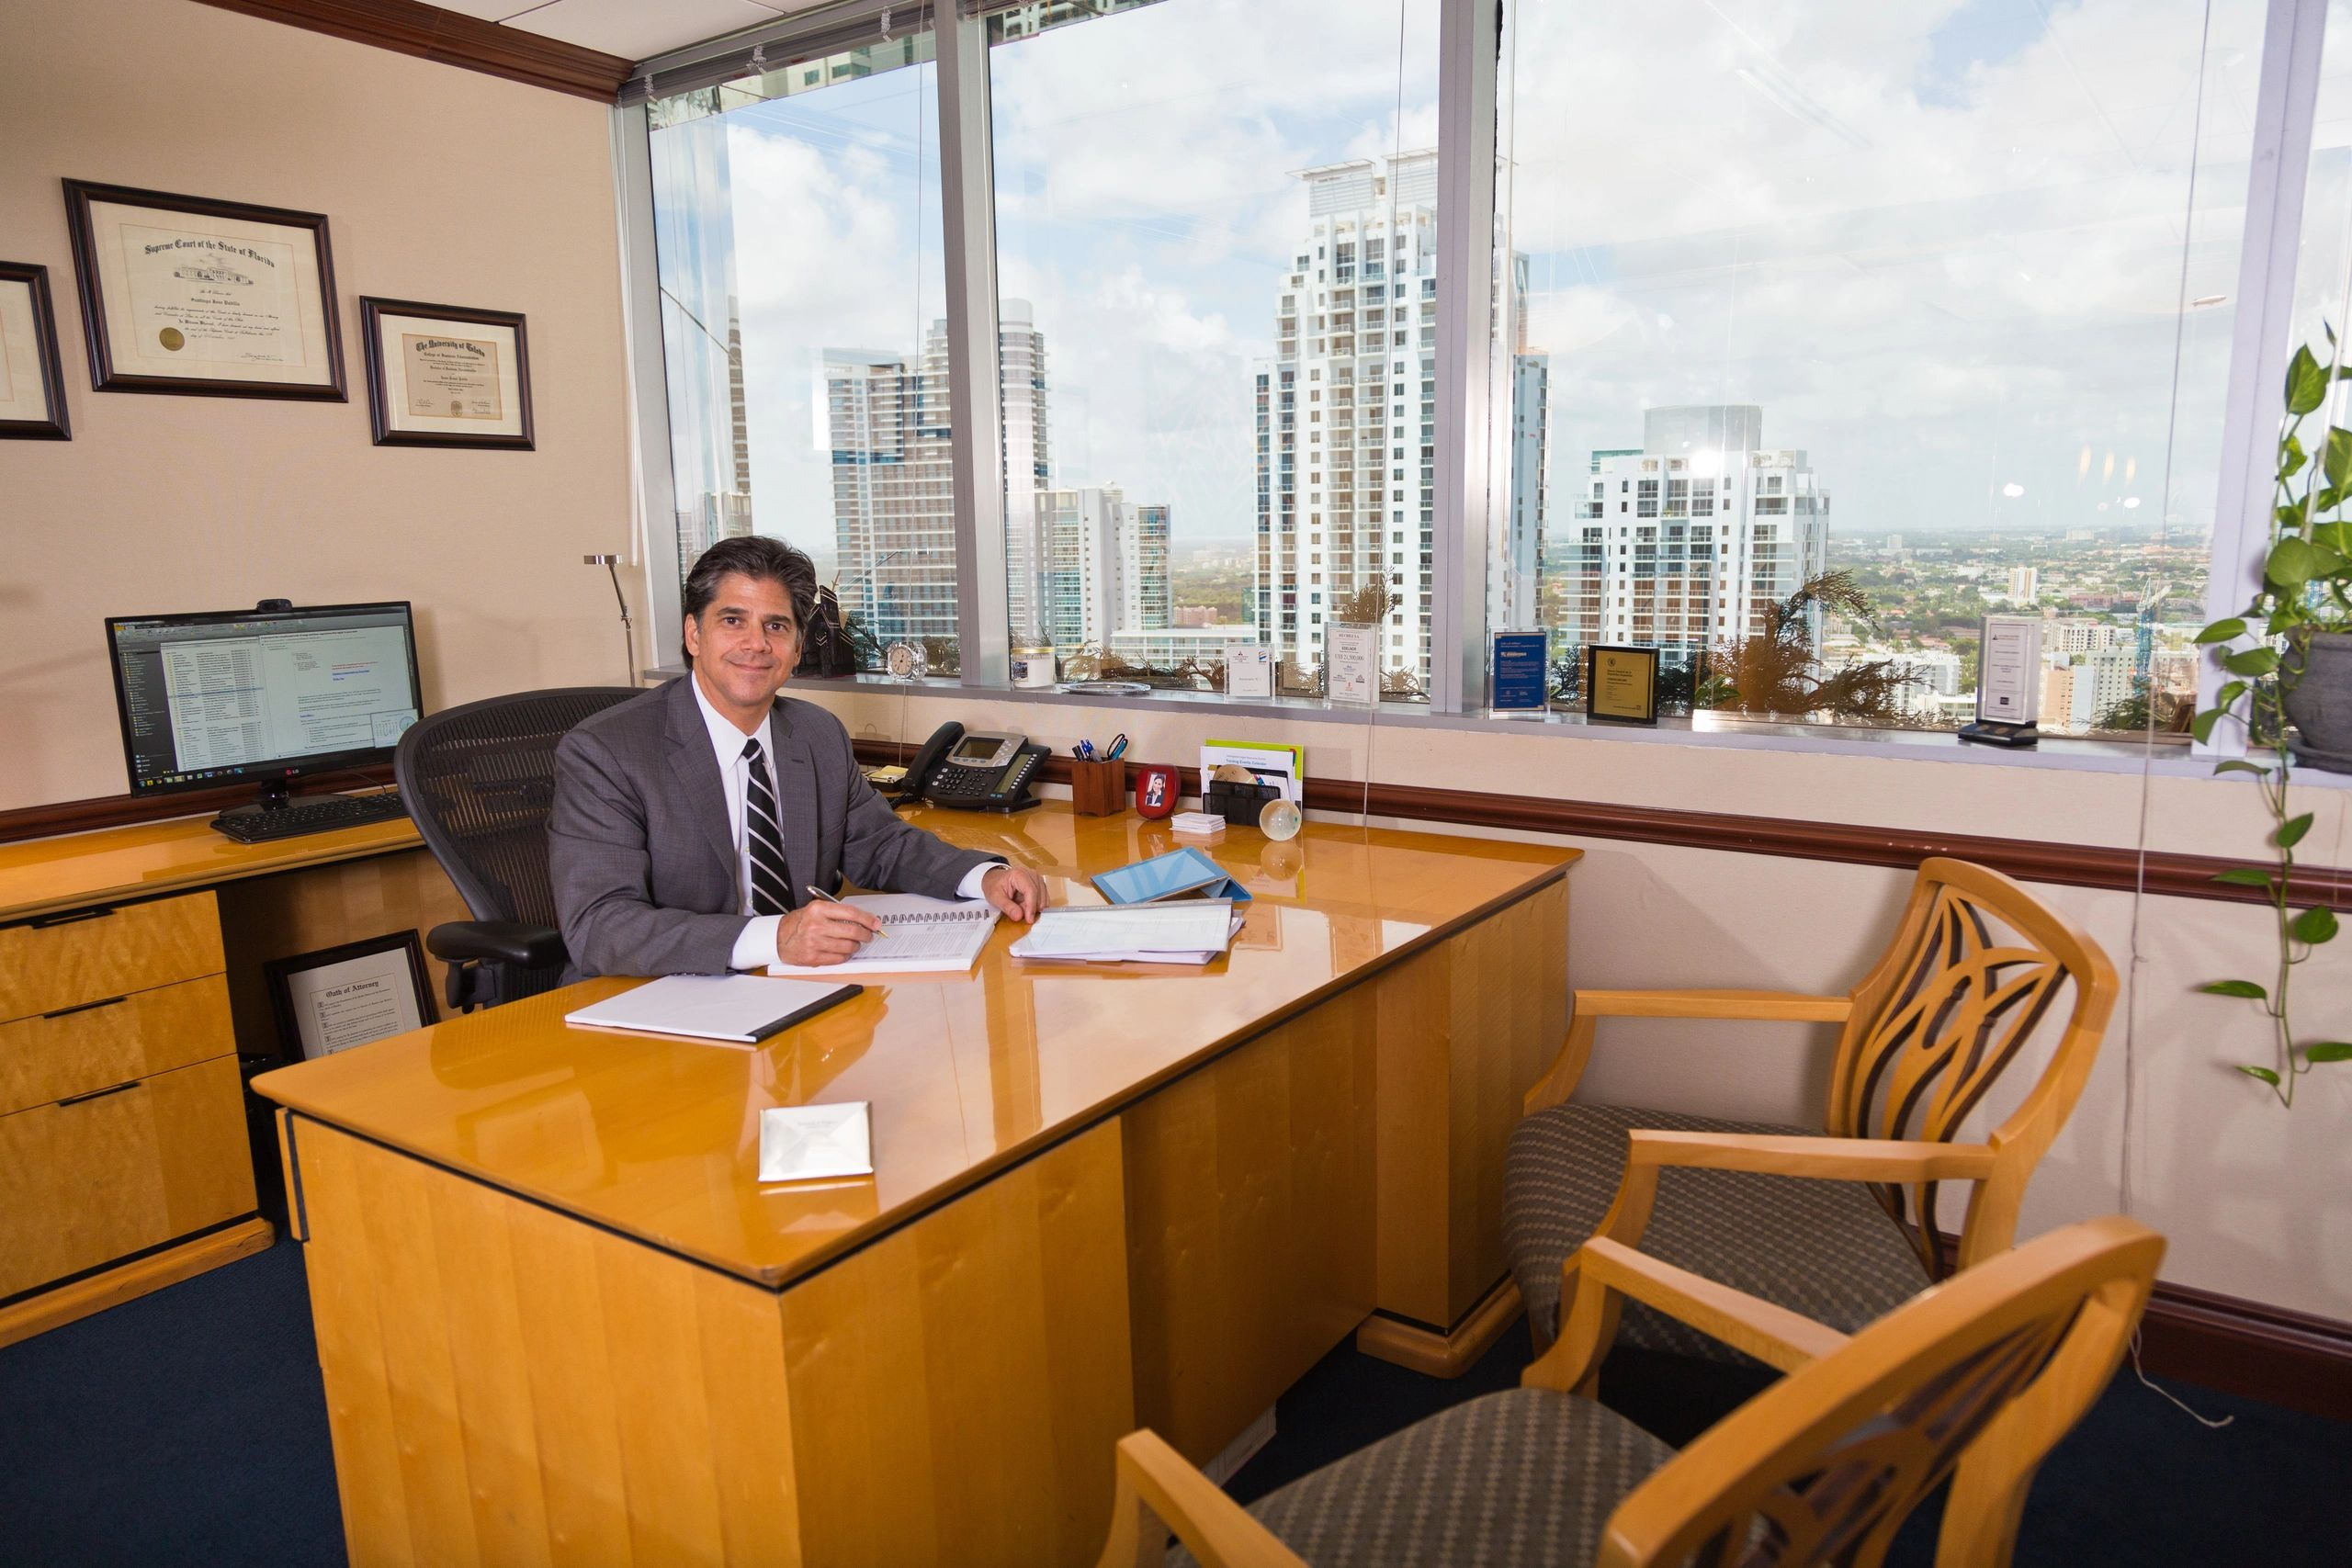 Santiago J. Padilla, Esq. sitting at his desk.